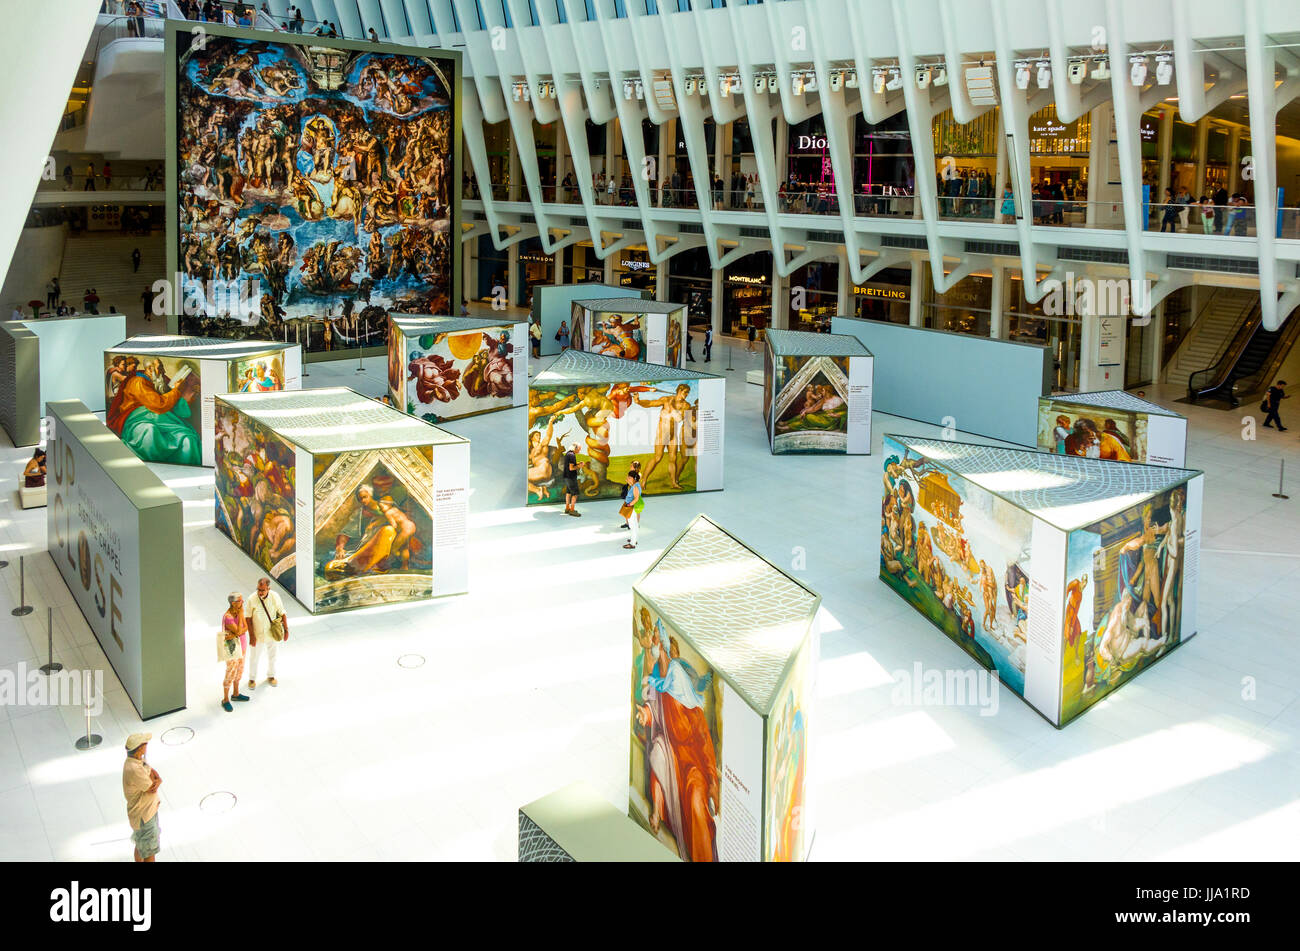 Exhibition in World Trade Center's Oculus shows Up Close Michelangelo's Sistine Chapel replicas Stock Photo